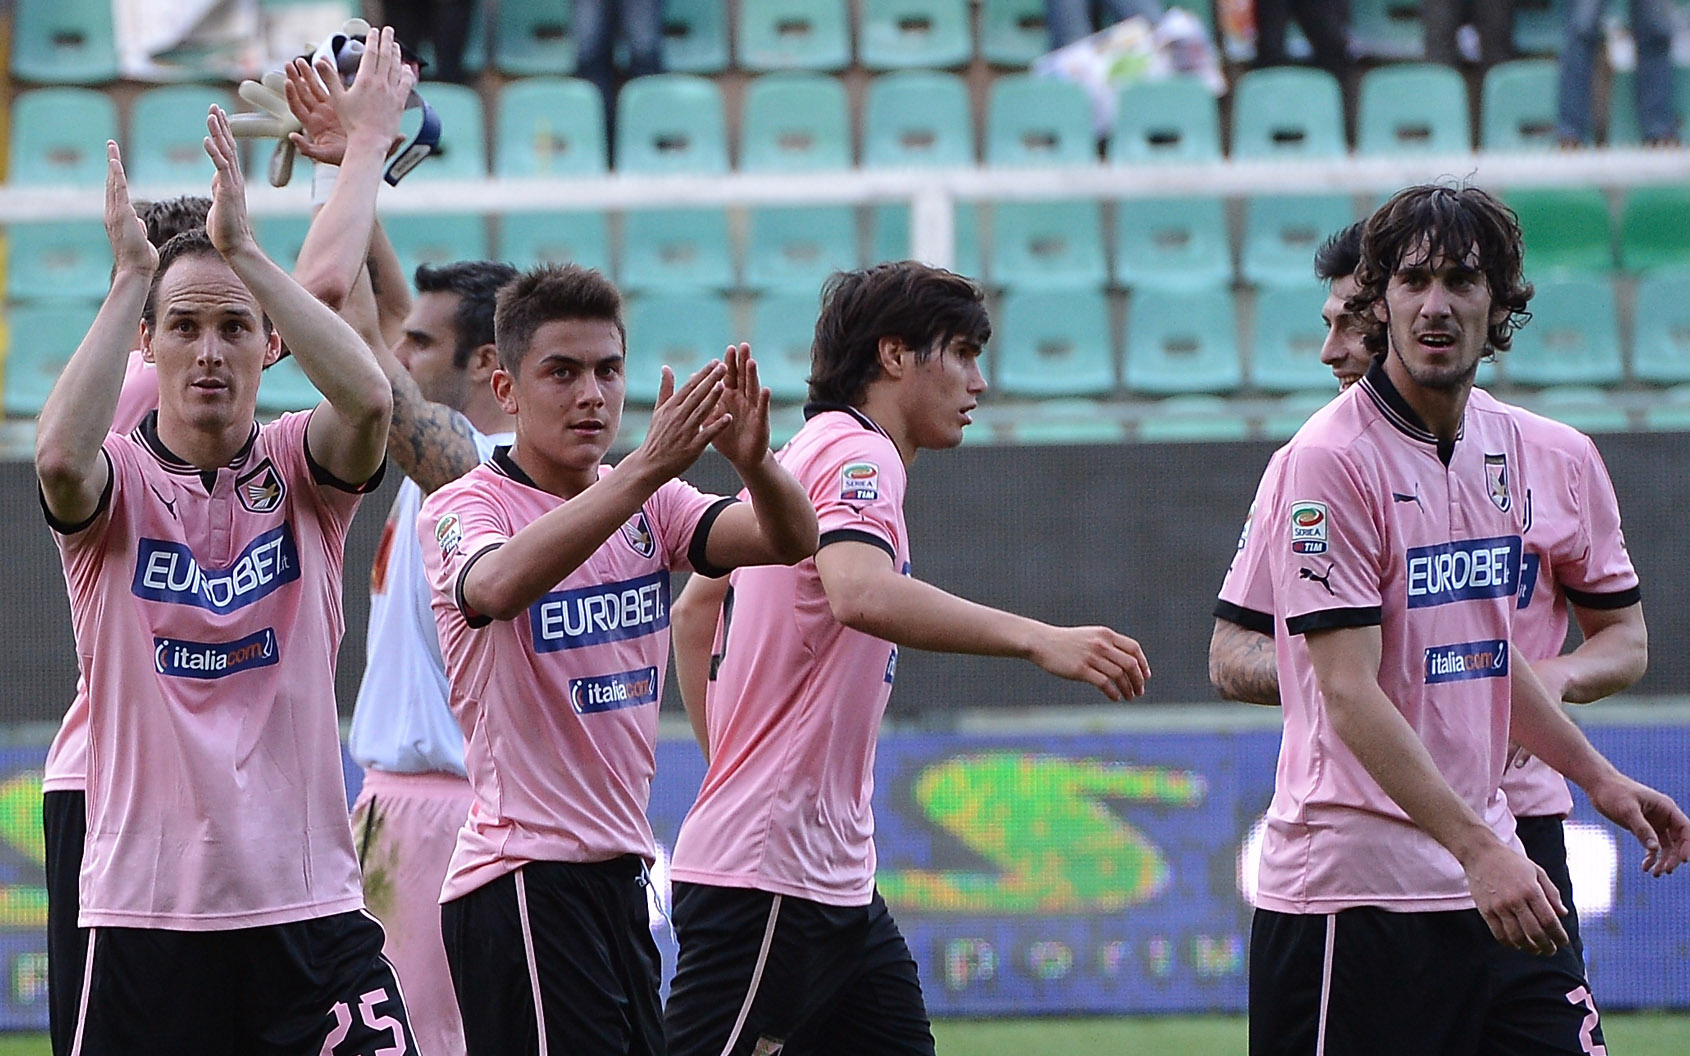 (Video) Catania 1-1 Palermo: Serie A highlights